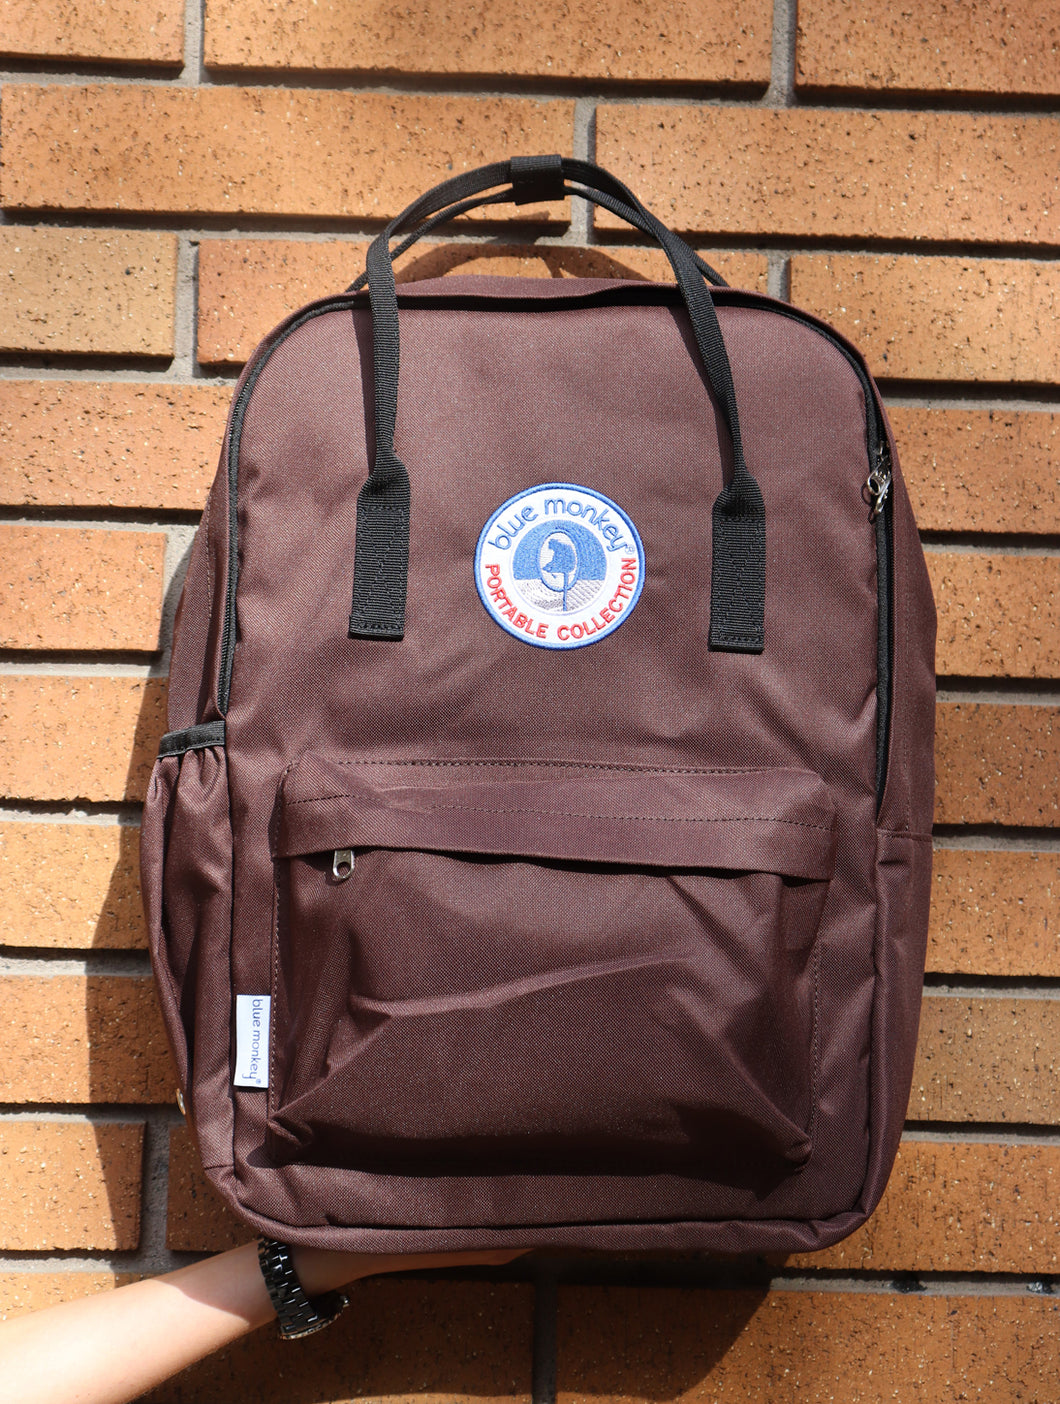 Blue Monkey | Chocolate Brown Backpack